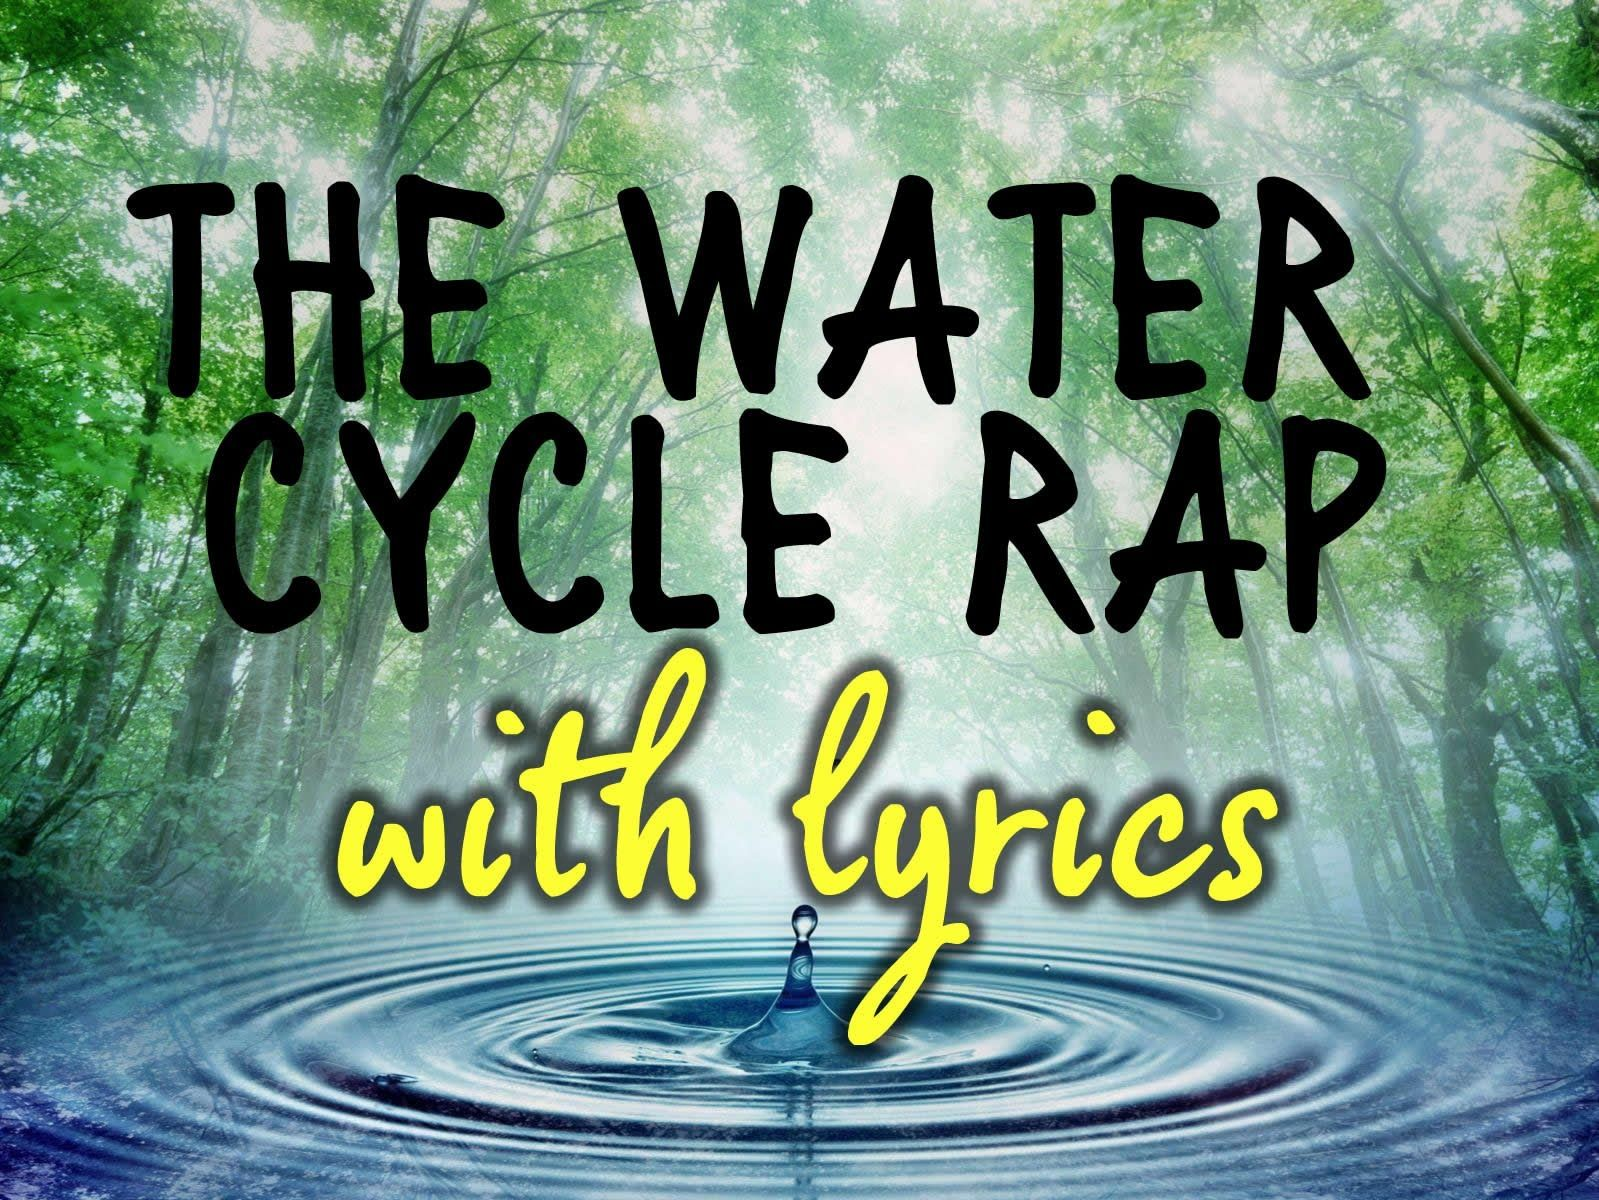 The Water Cycle Rap With Lyrics